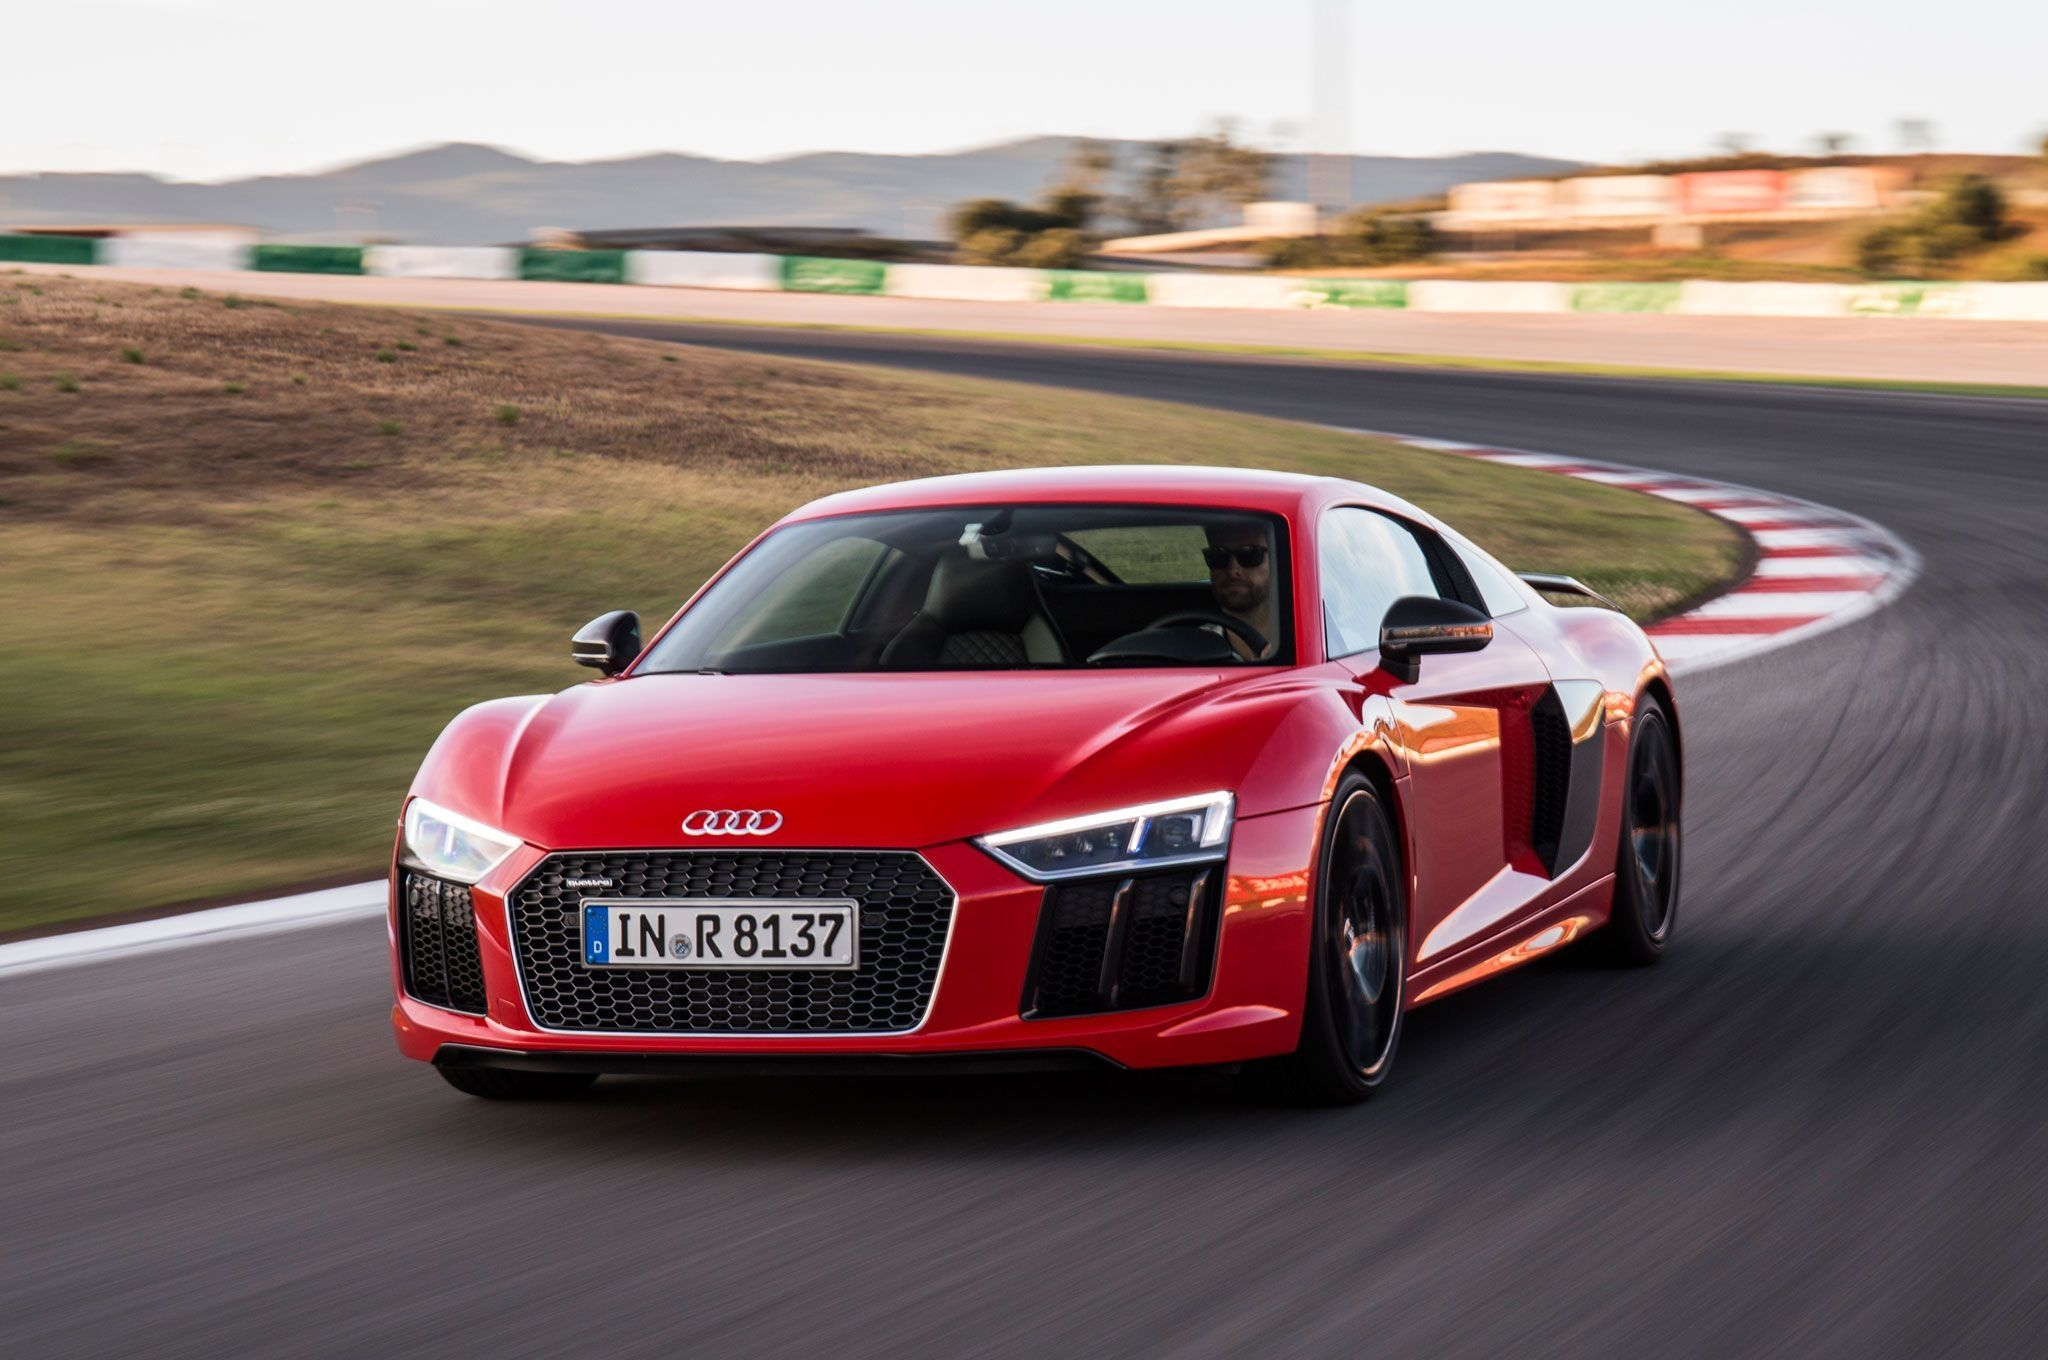 Audi R Lmxs Price Car And Home Pinterest Evo And Cars - Audi sports car price